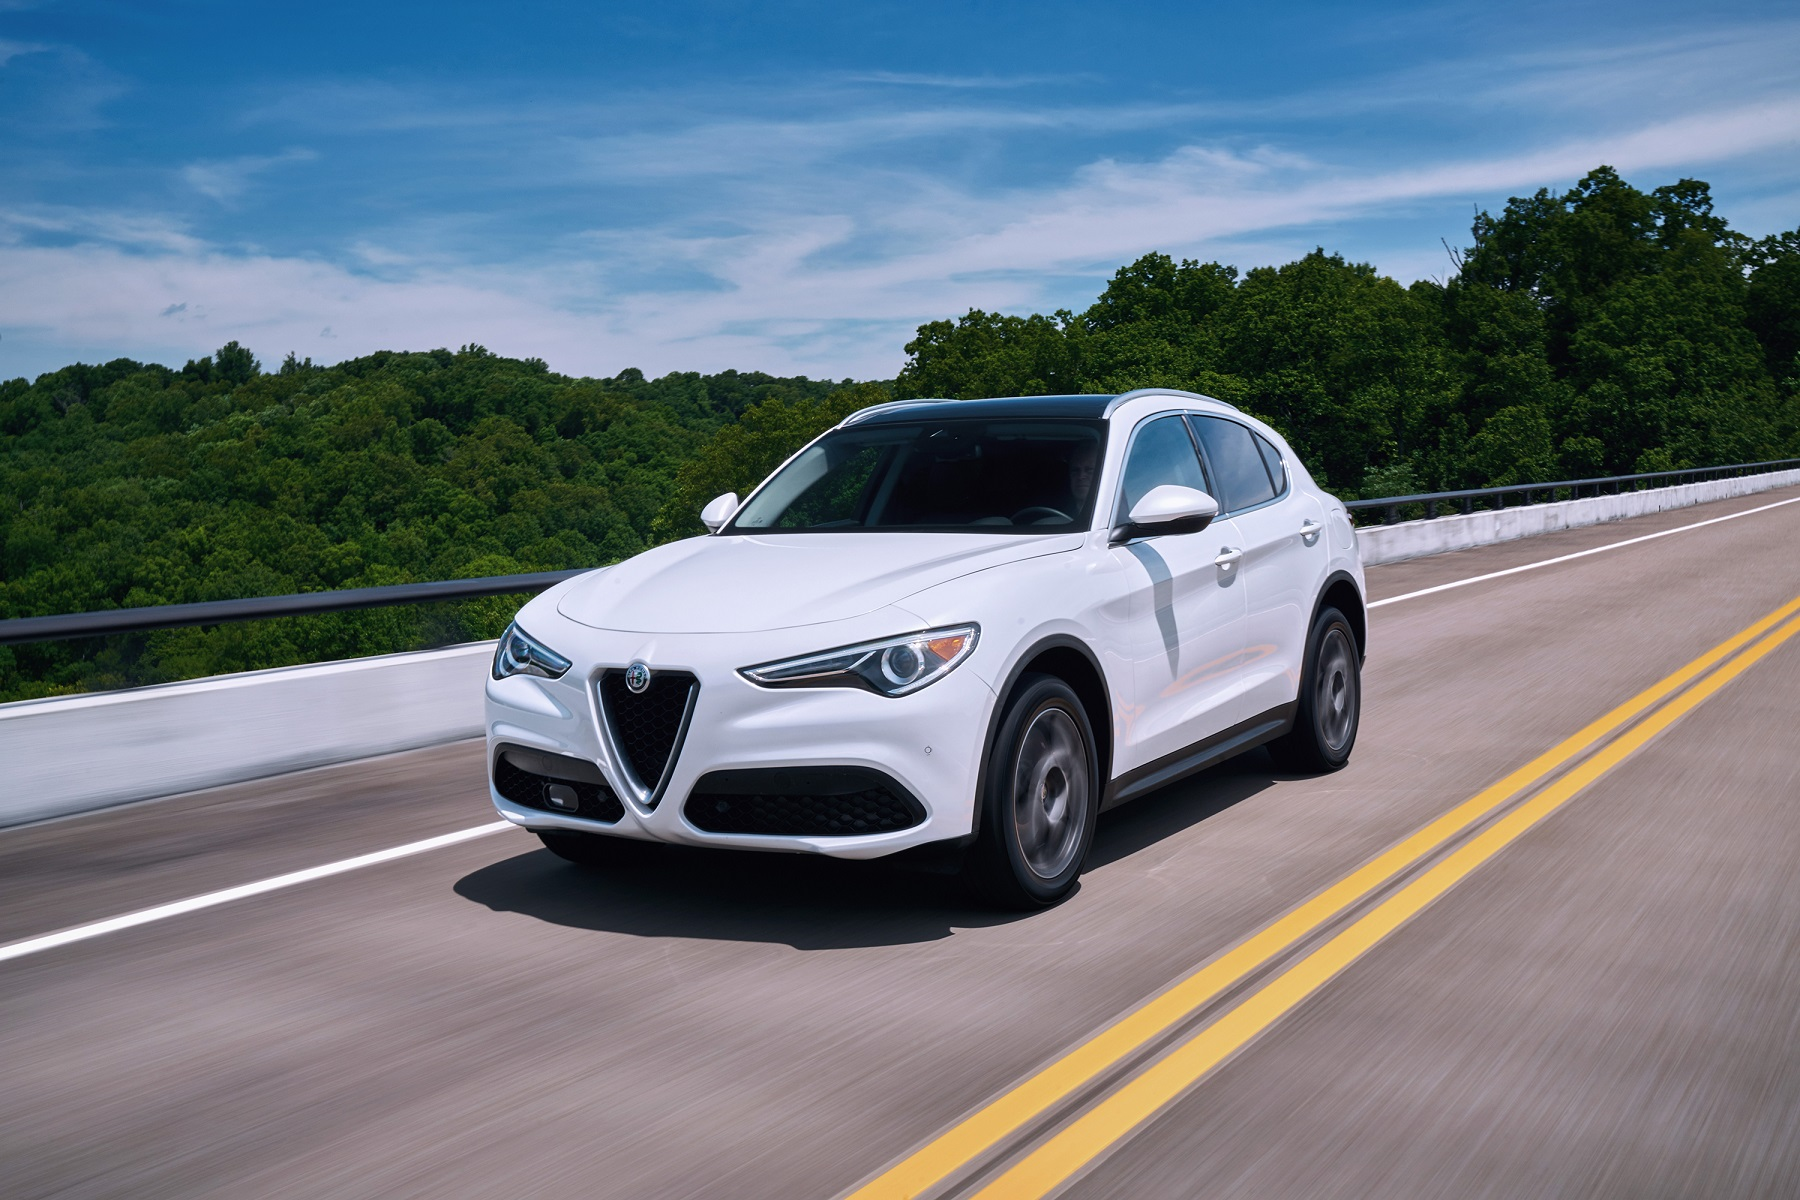 2018 Alfa Romeo Stelvio Ready For The Hairpin Turns Get Off The